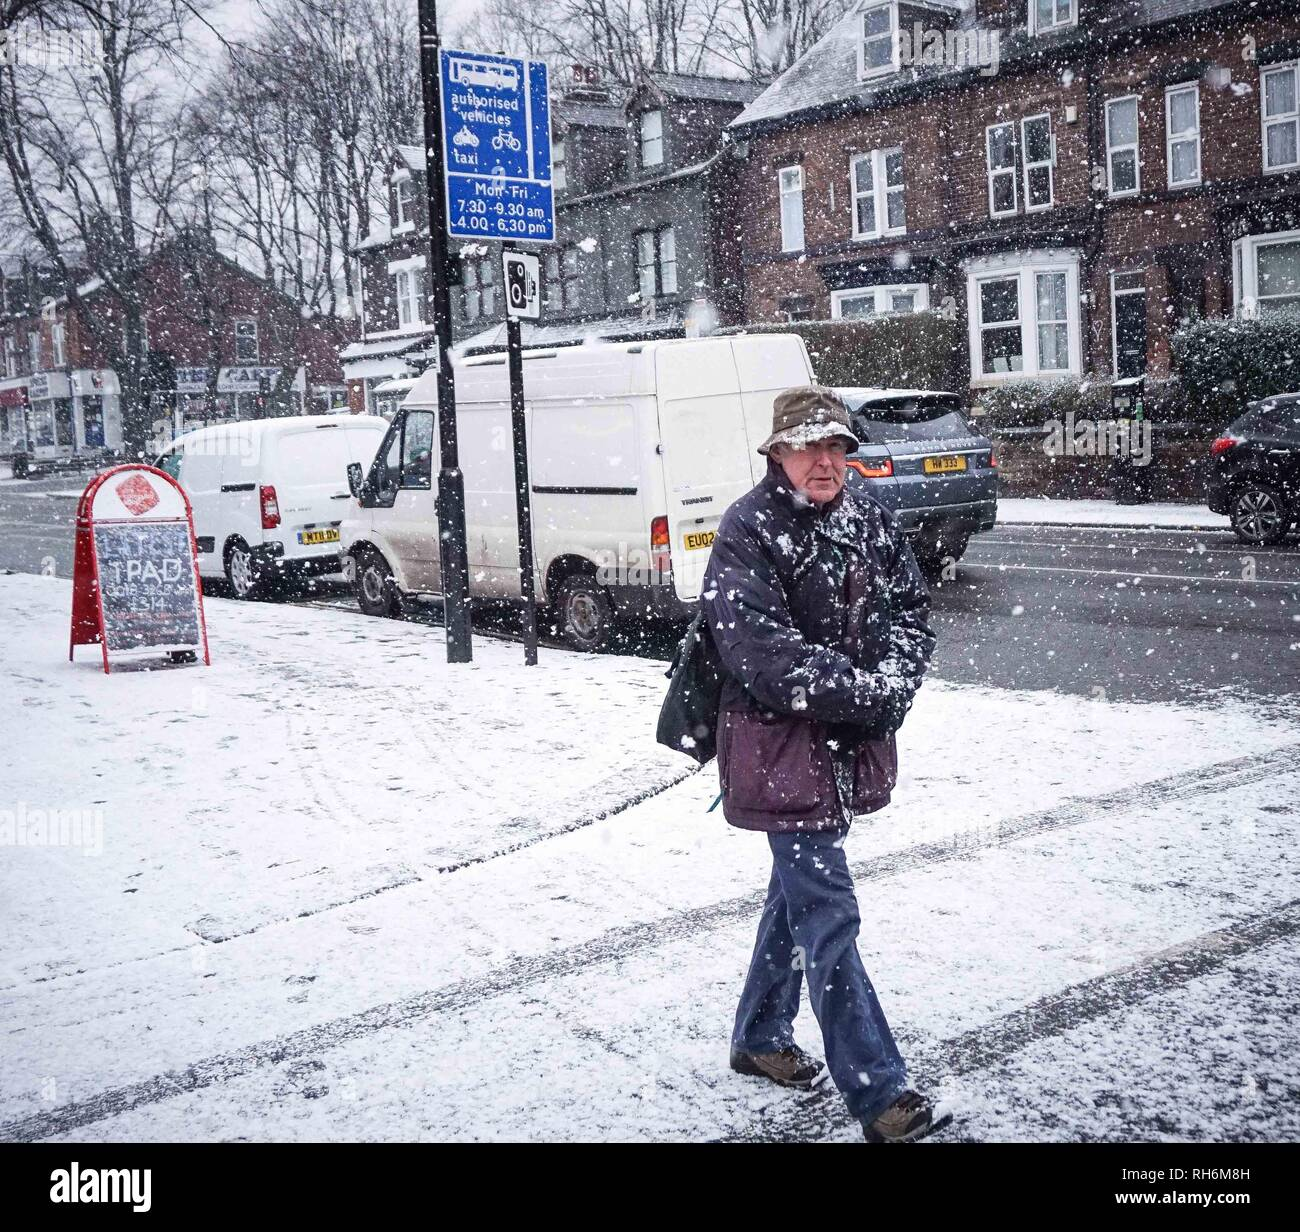 Sheffield, UK. 1st Feb 2019. A man walks a road as covered with snow.during a snowfall in Sheffield City Center.. Britain is experiencing bad weather as the whole country is snowing at very low temperatures, mainly in southern England. Credit: Ioannis Alexopoulos/Alamy Live News - Stock Image